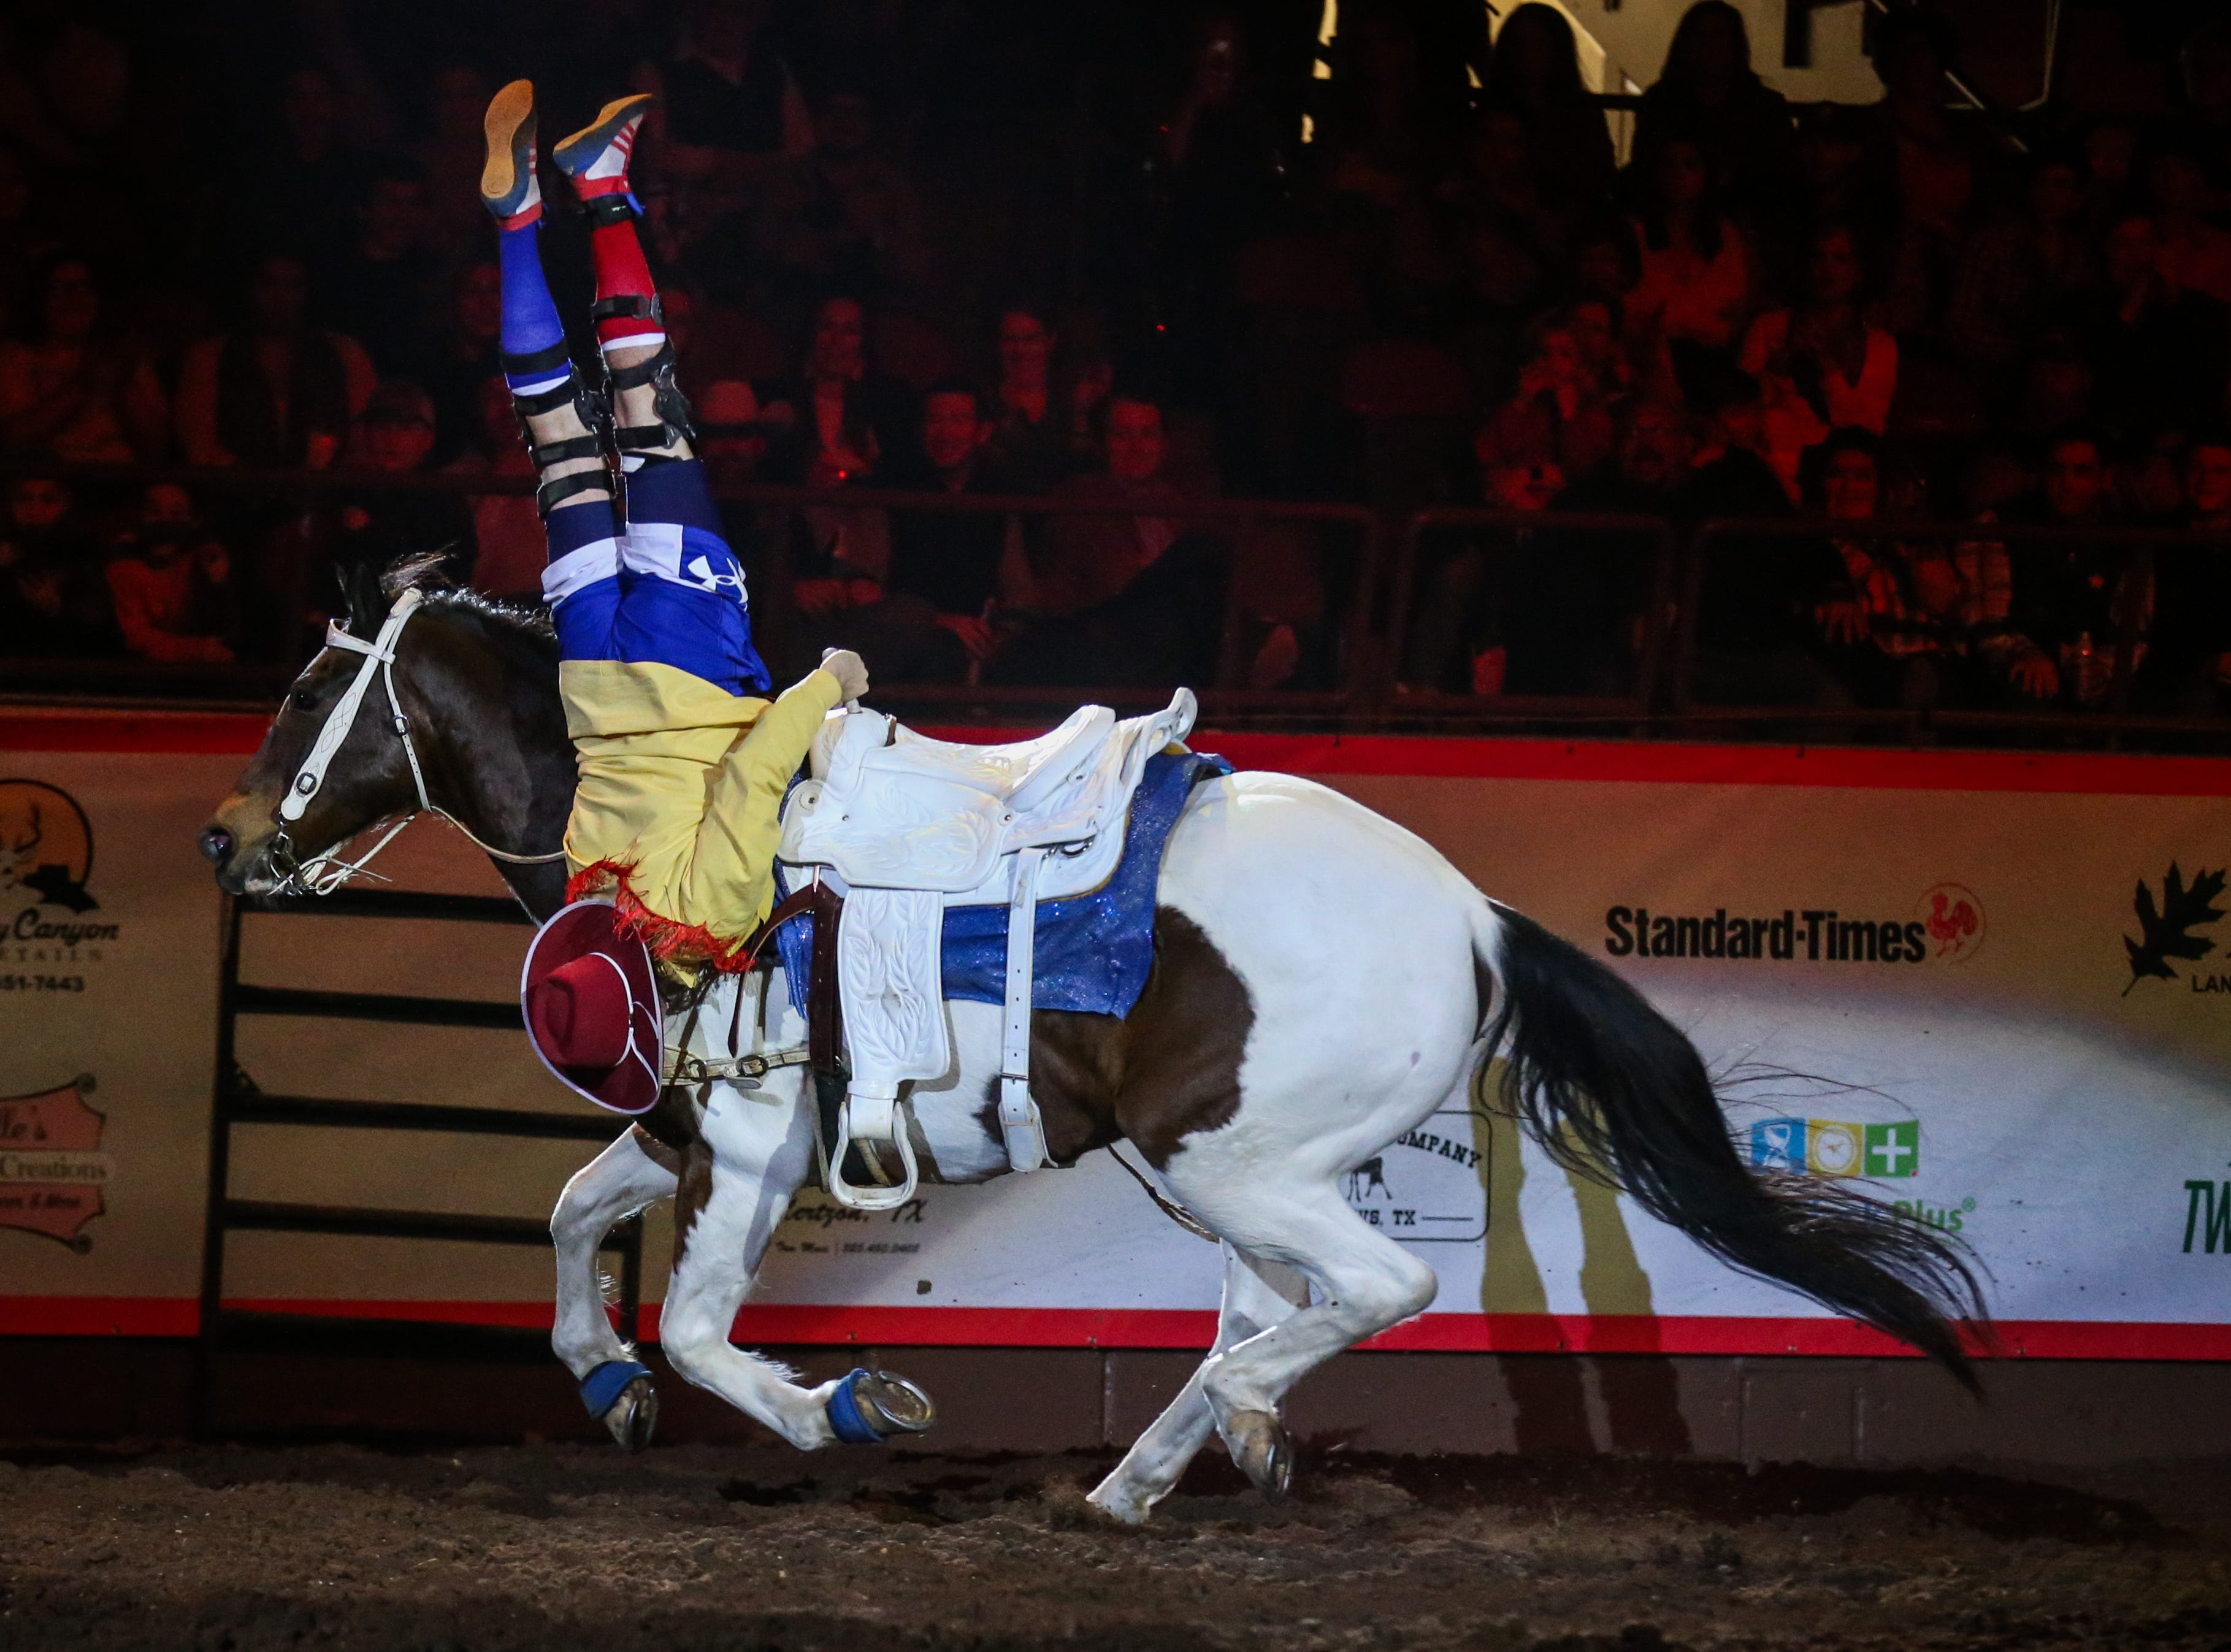 The rodeo clown performs tricks on his horse during the 1st performance of the San Angelo Stock Show & Rodeo Friday, Feb. 1, 2019, at Foster Communications Coliseum.